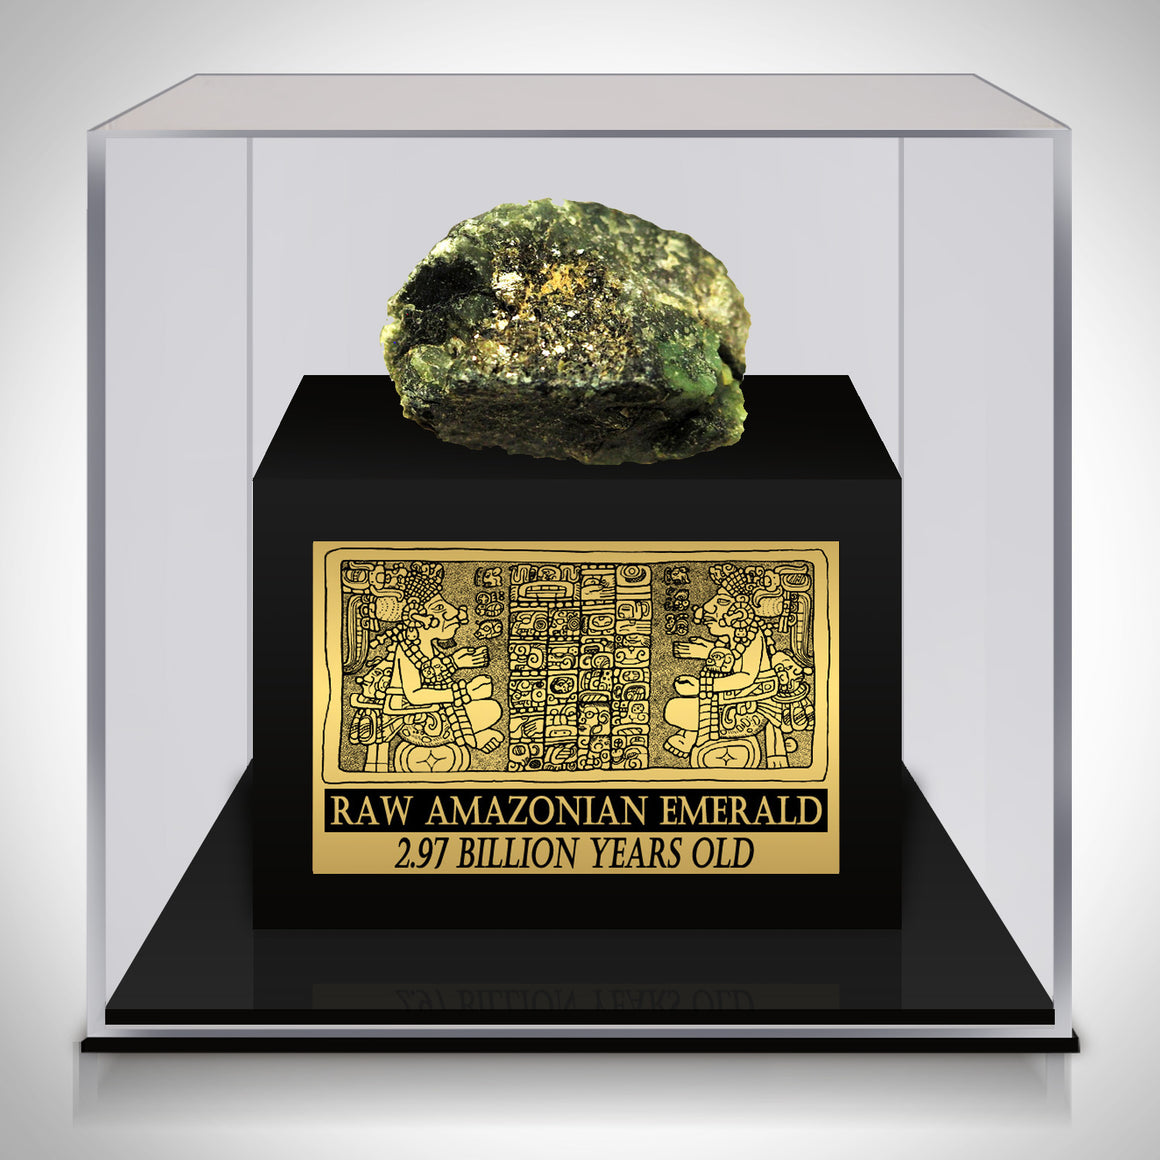 Authentic  2.97 BILLION YEARS OLD RAW AMAZONIAN EMERALD Displayed in a Rare-T Exclusive Custom Museum Display